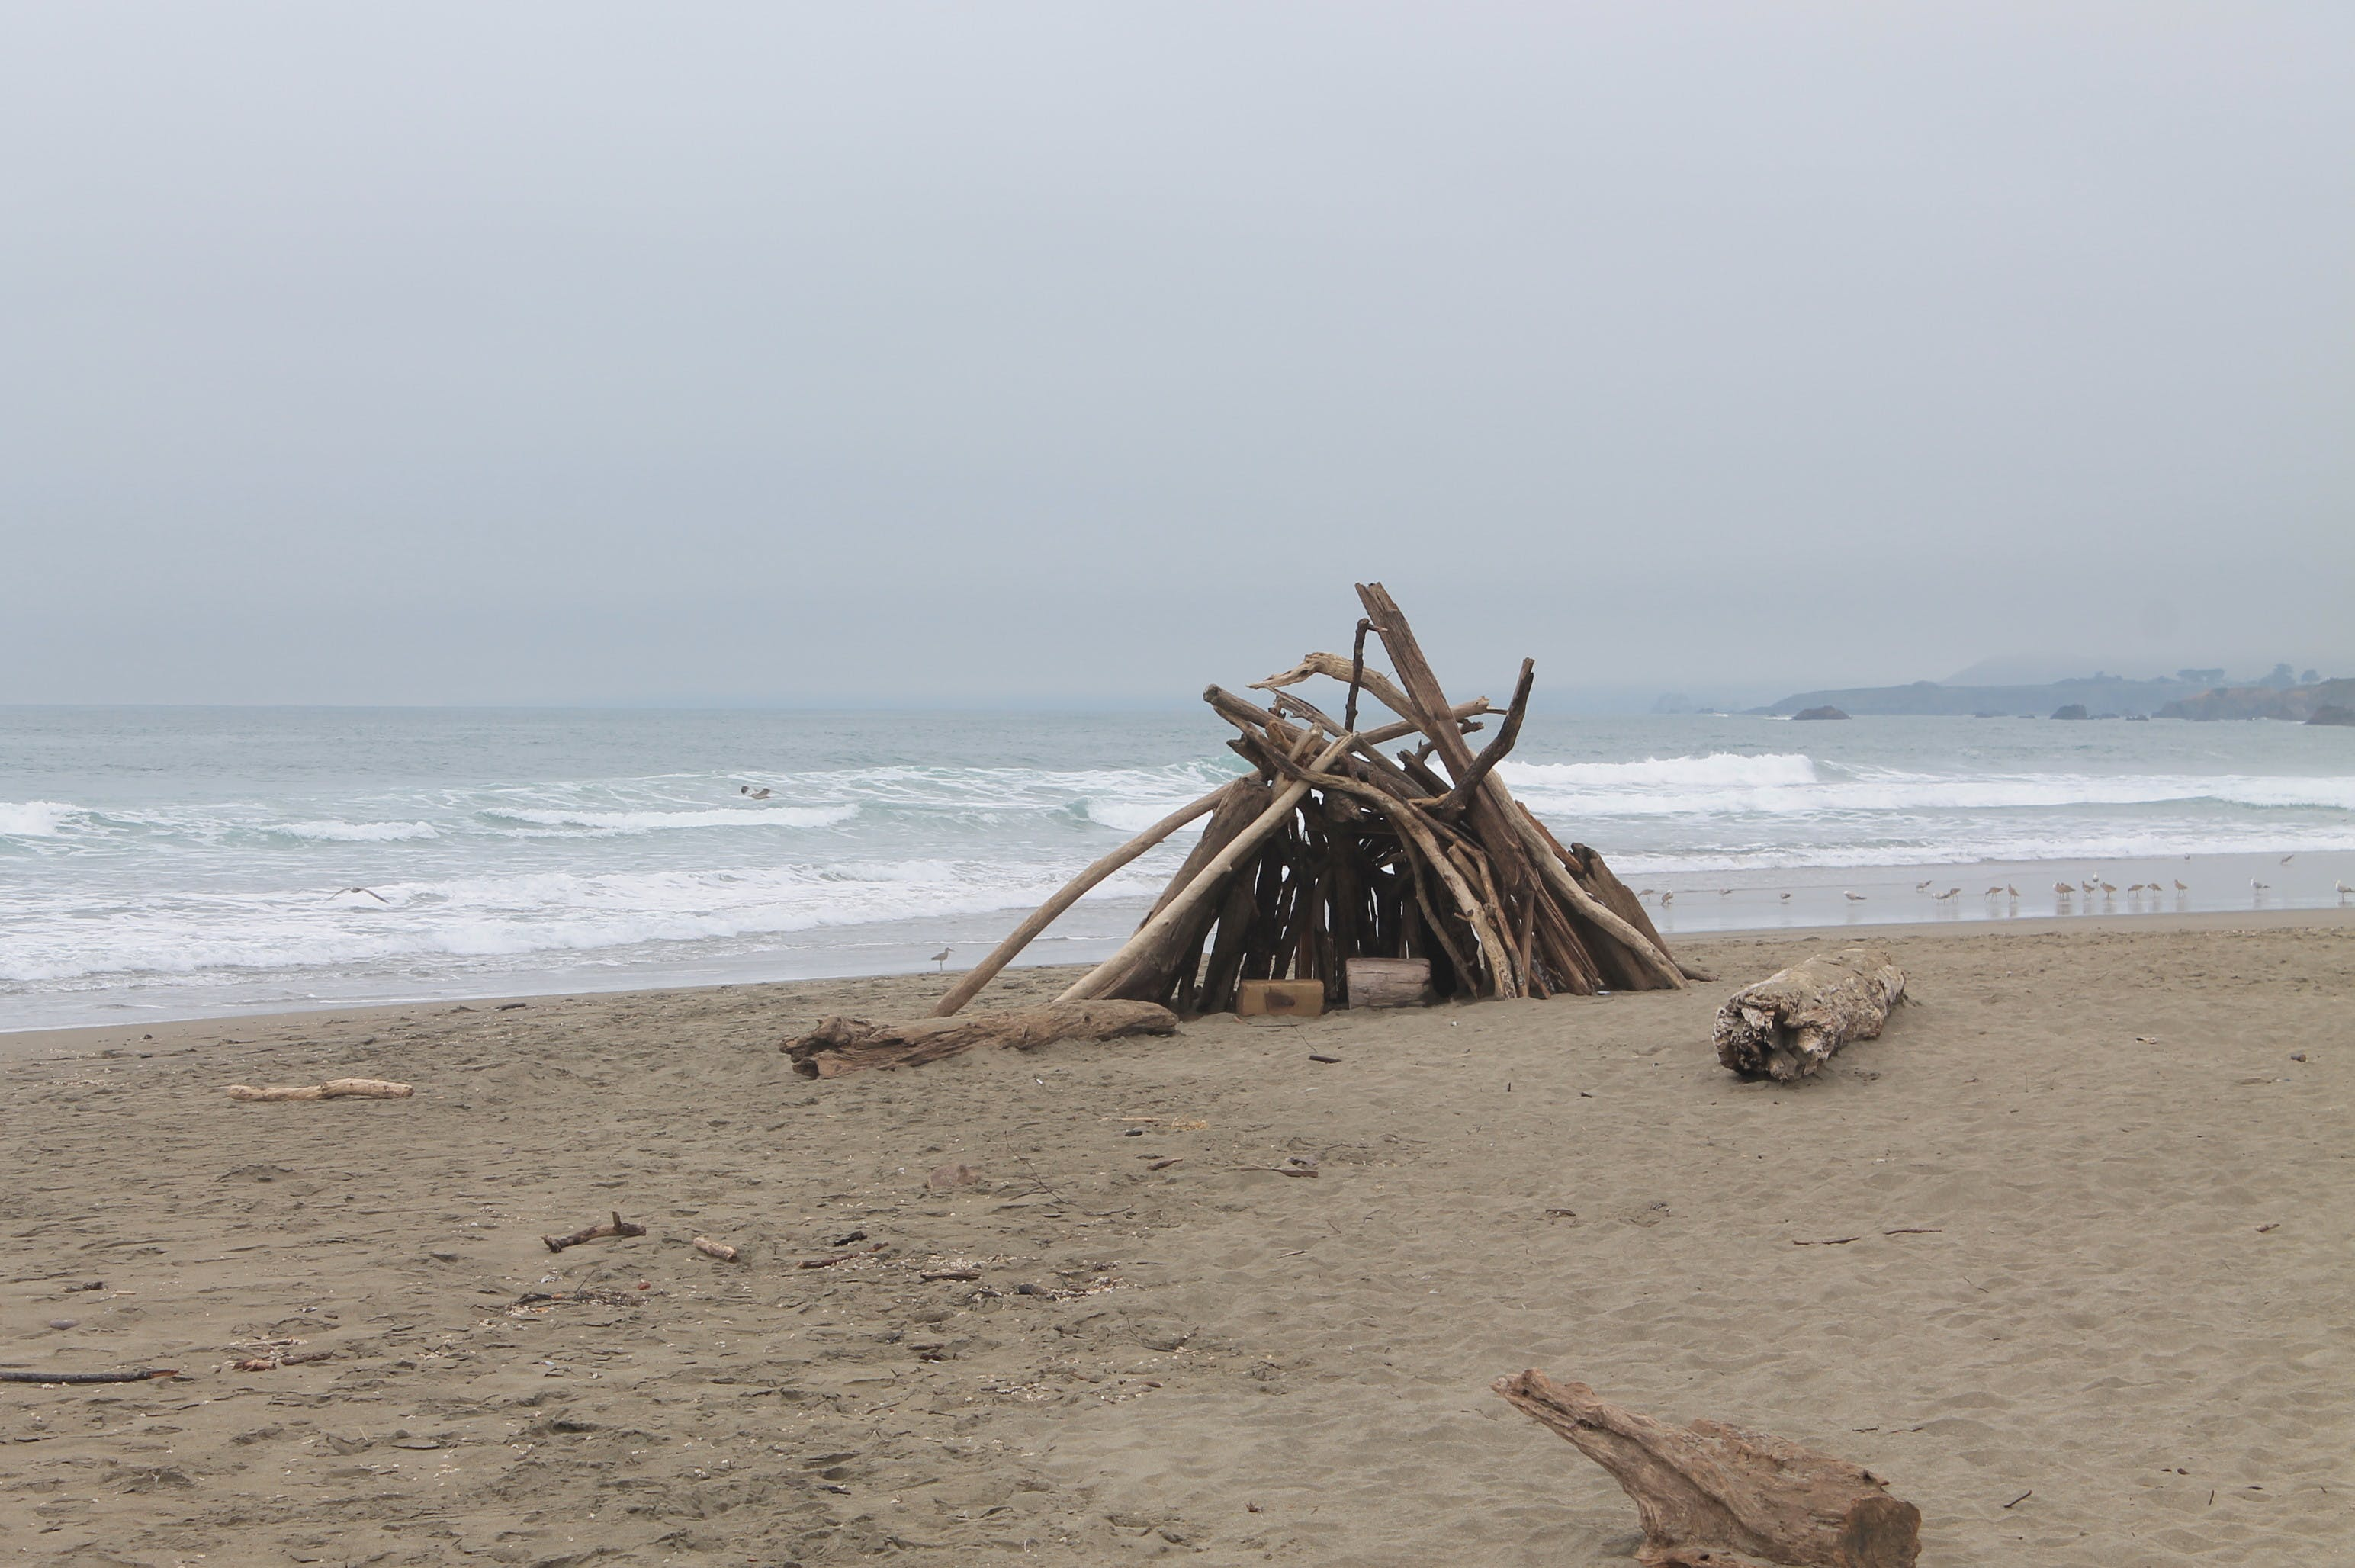 Pacific ocean, highway one, Bodega Bay Inn, beach, coastline, driftwood